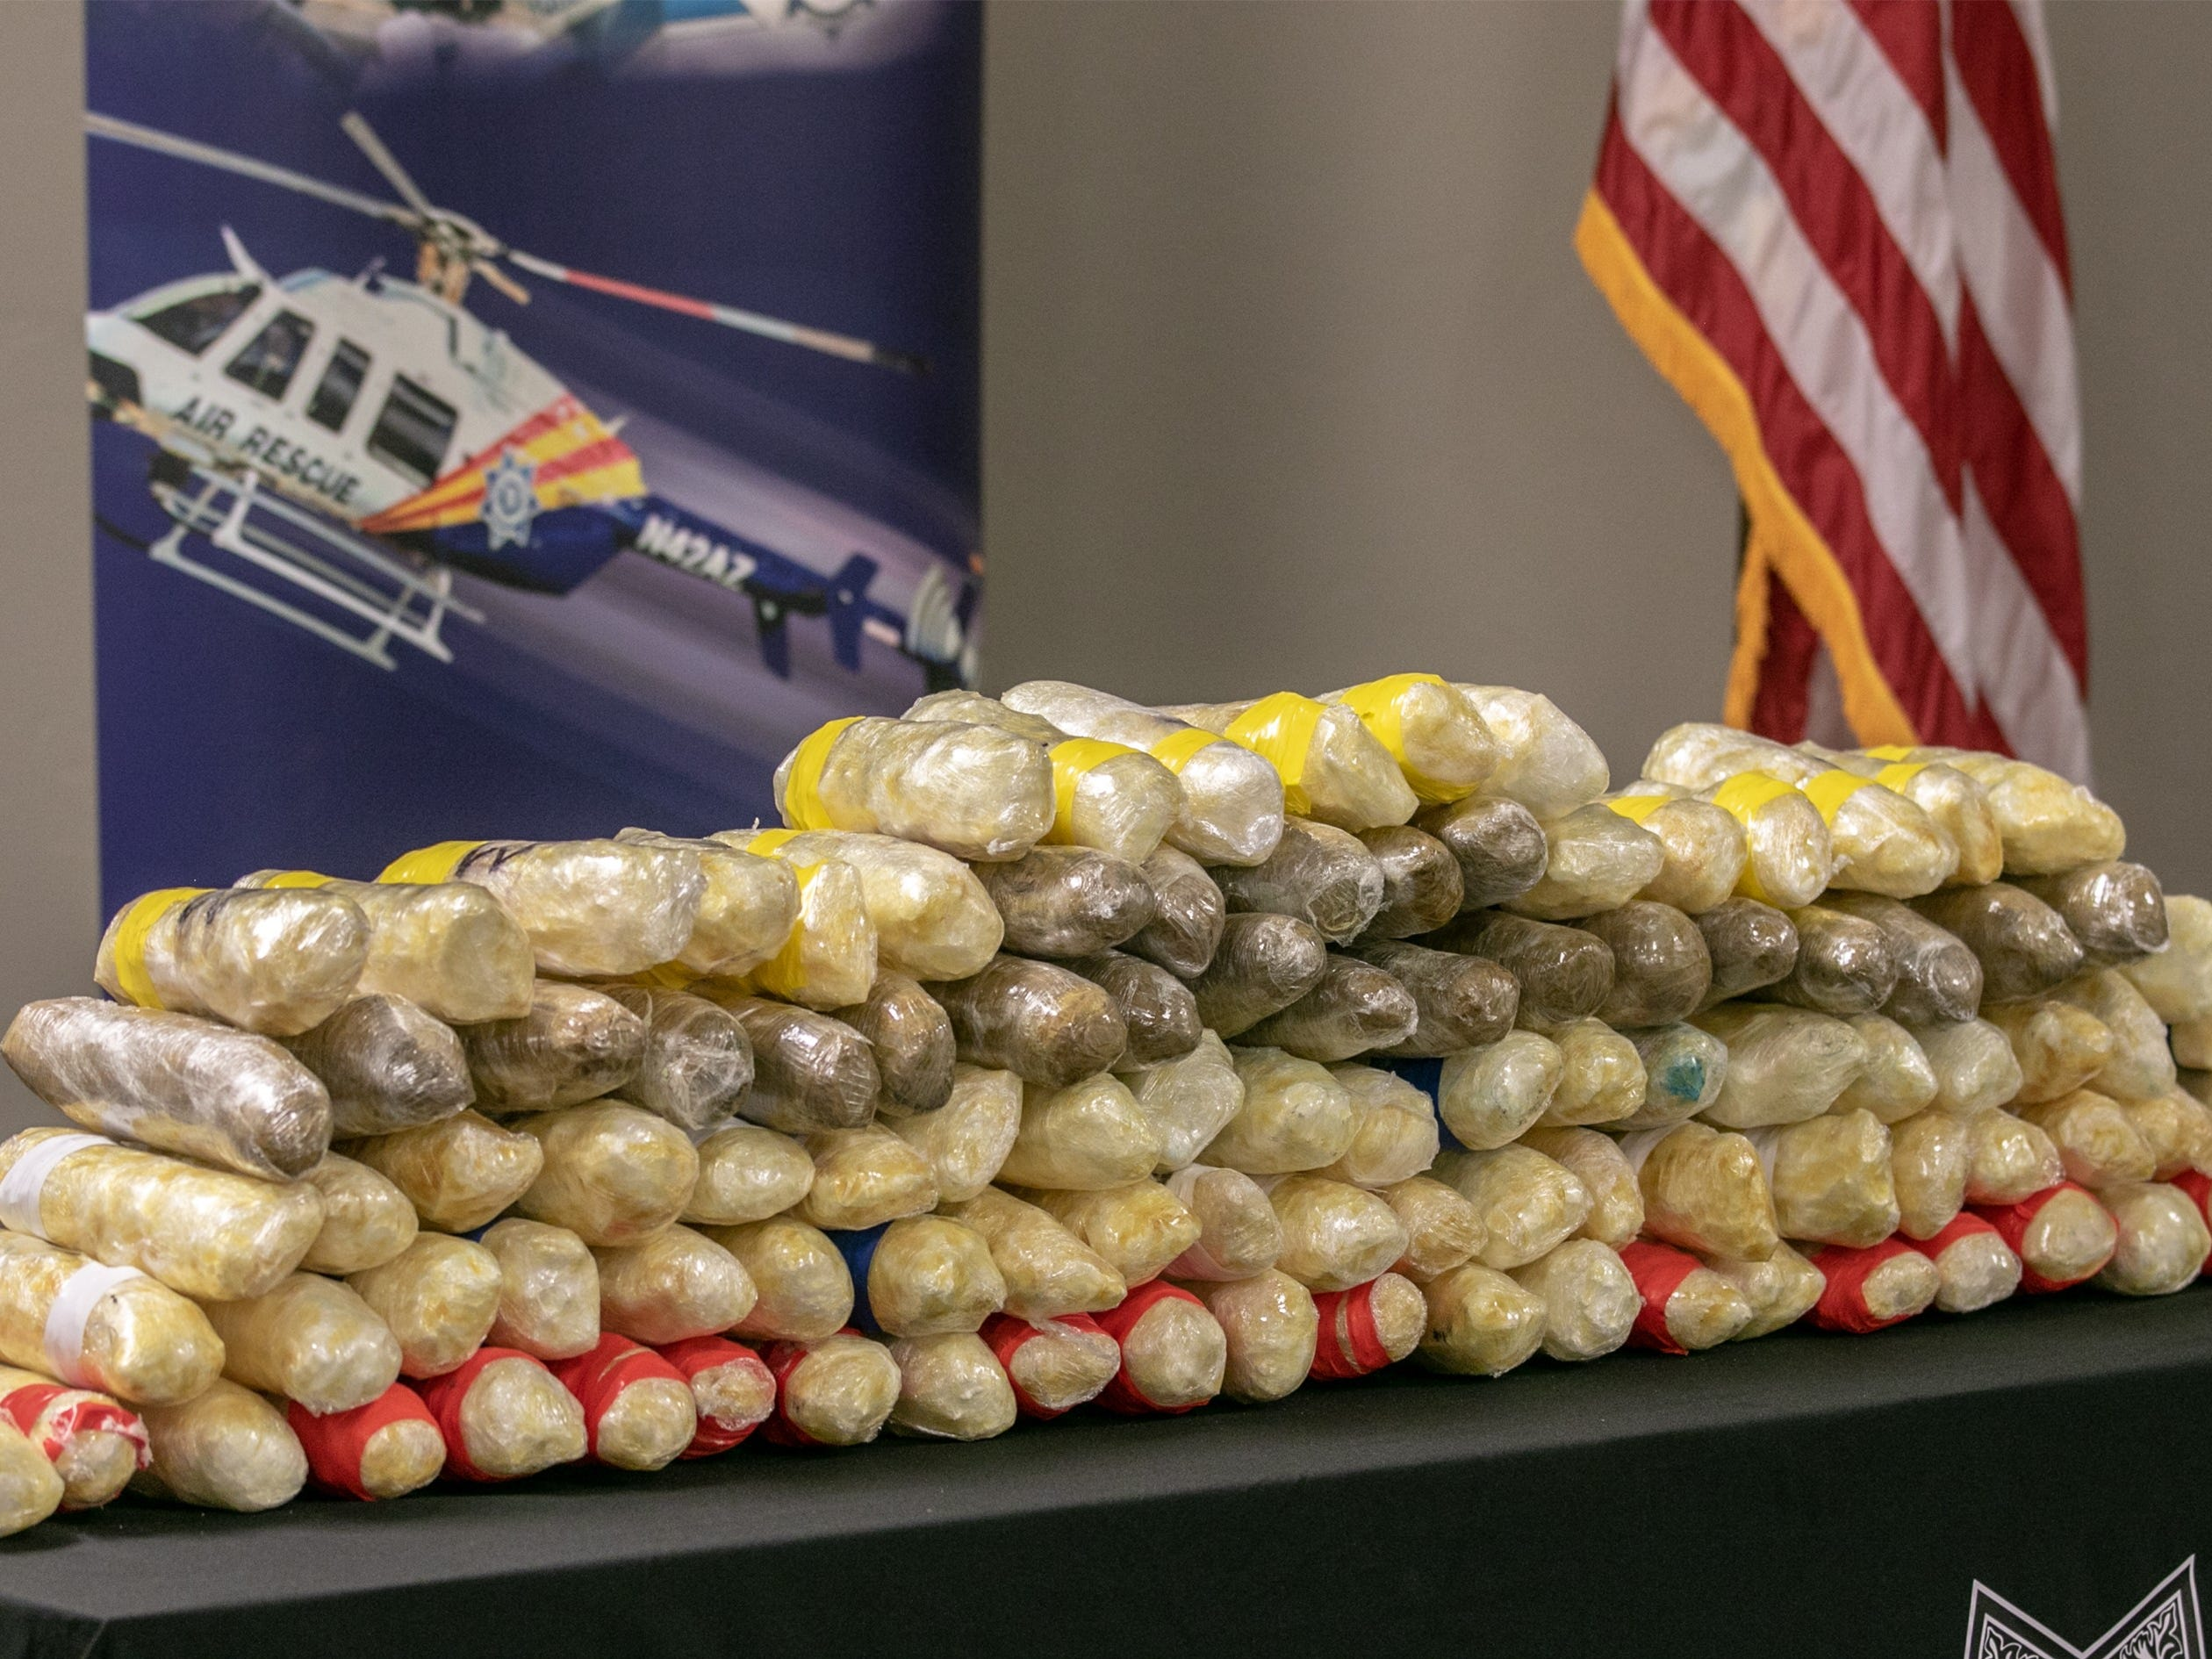 Some 225 pounds of methamphetamine seized during three traffic stops by troopers on southern Arizona freeways are displayed during a press conference on Sept. 17, 2018, in Tucson.